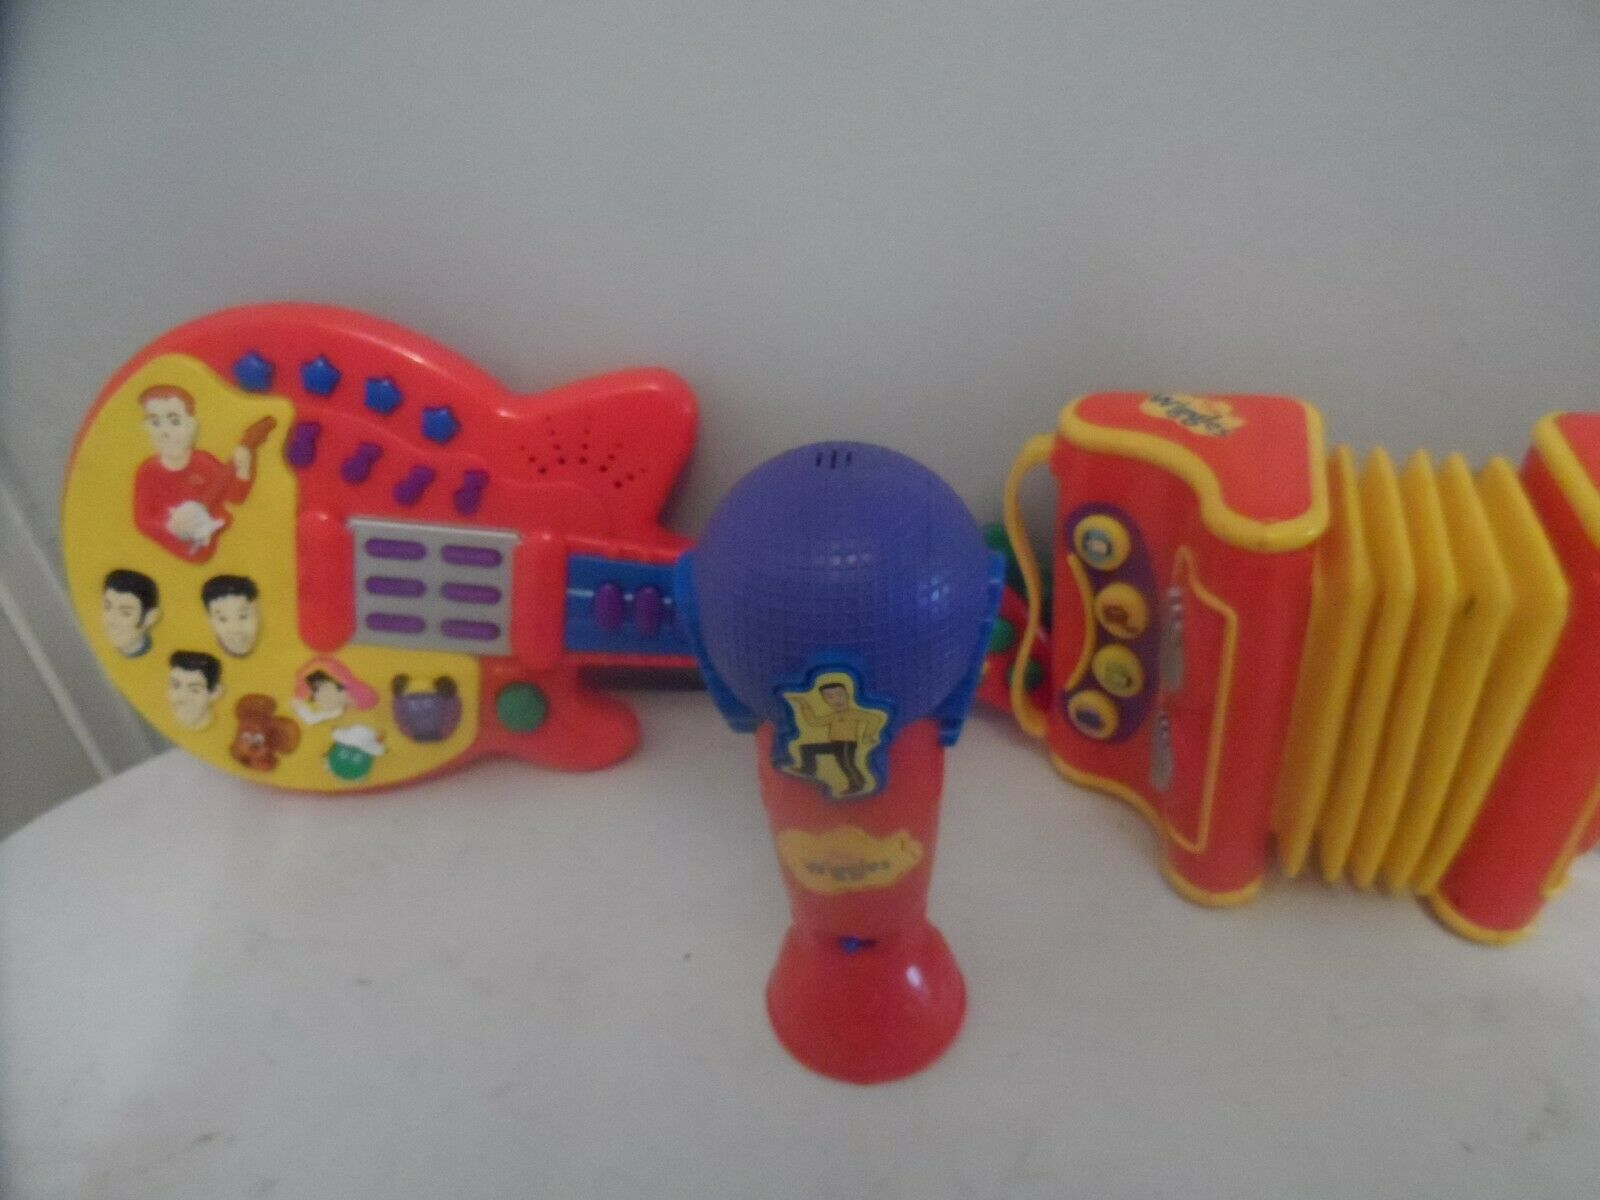 The Wiggles Guitar Accordian & Sing with me Microphone Instruments